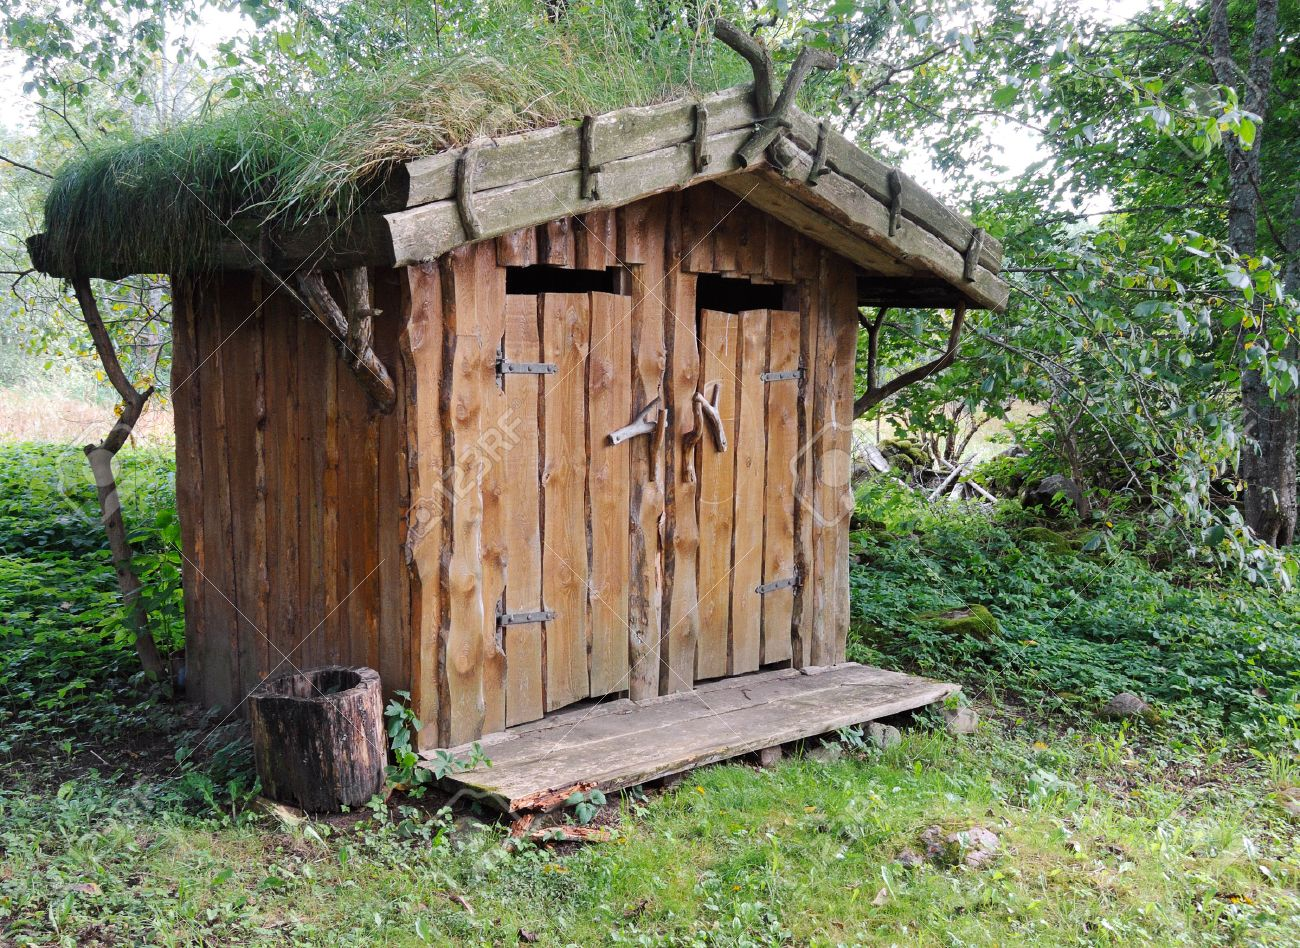 Image Of An Outhouse Or Outdoor Toilet In The Country Stock Photo 35071403